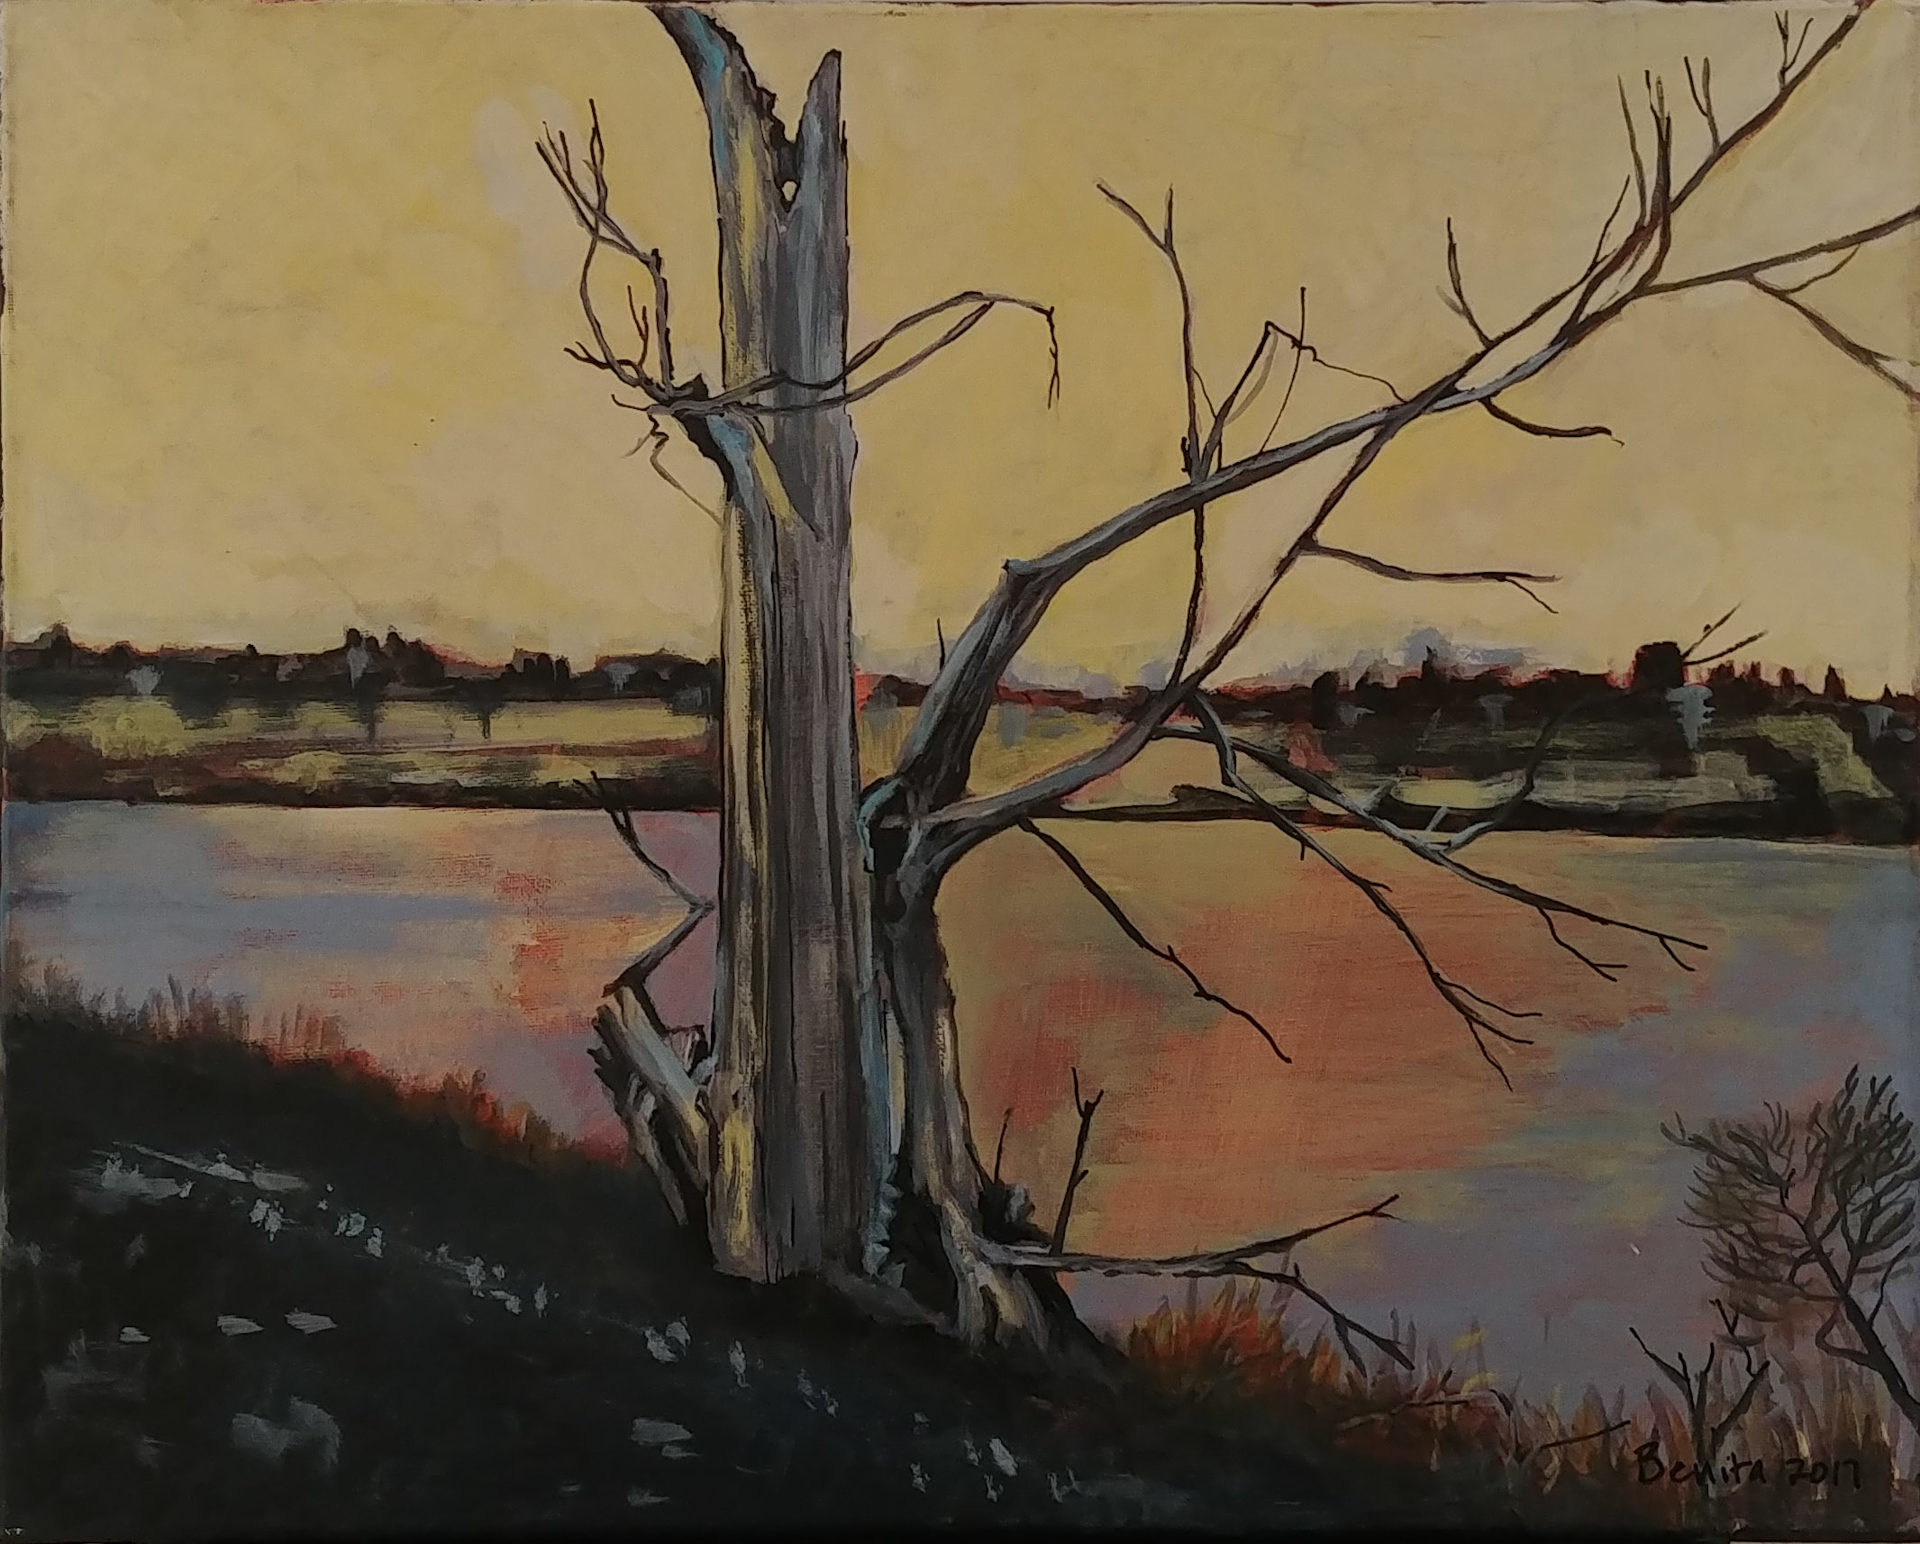 Riverwalk by Benita Cole (McMinnville, OR)